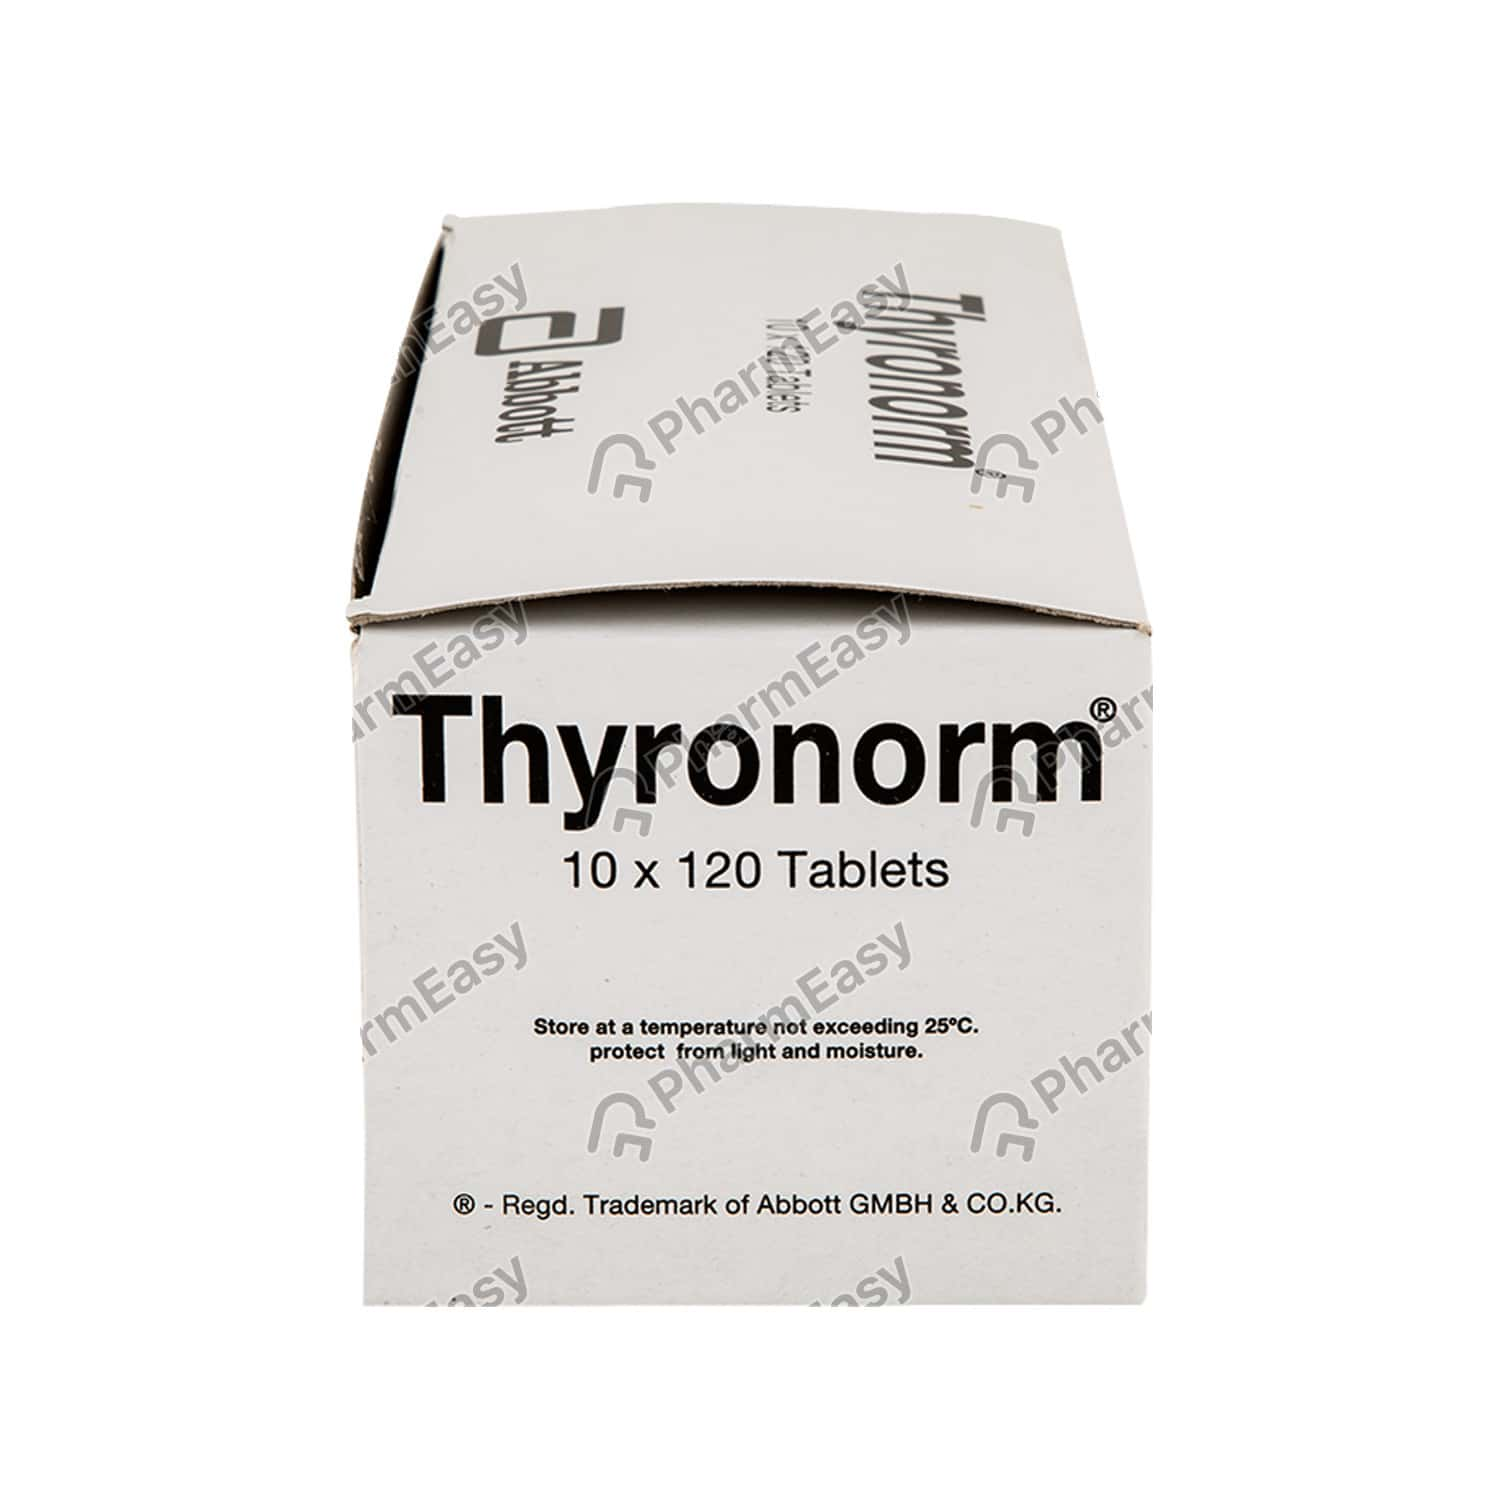 Thyronorm 150mcg Bottle Of 120 Tablets